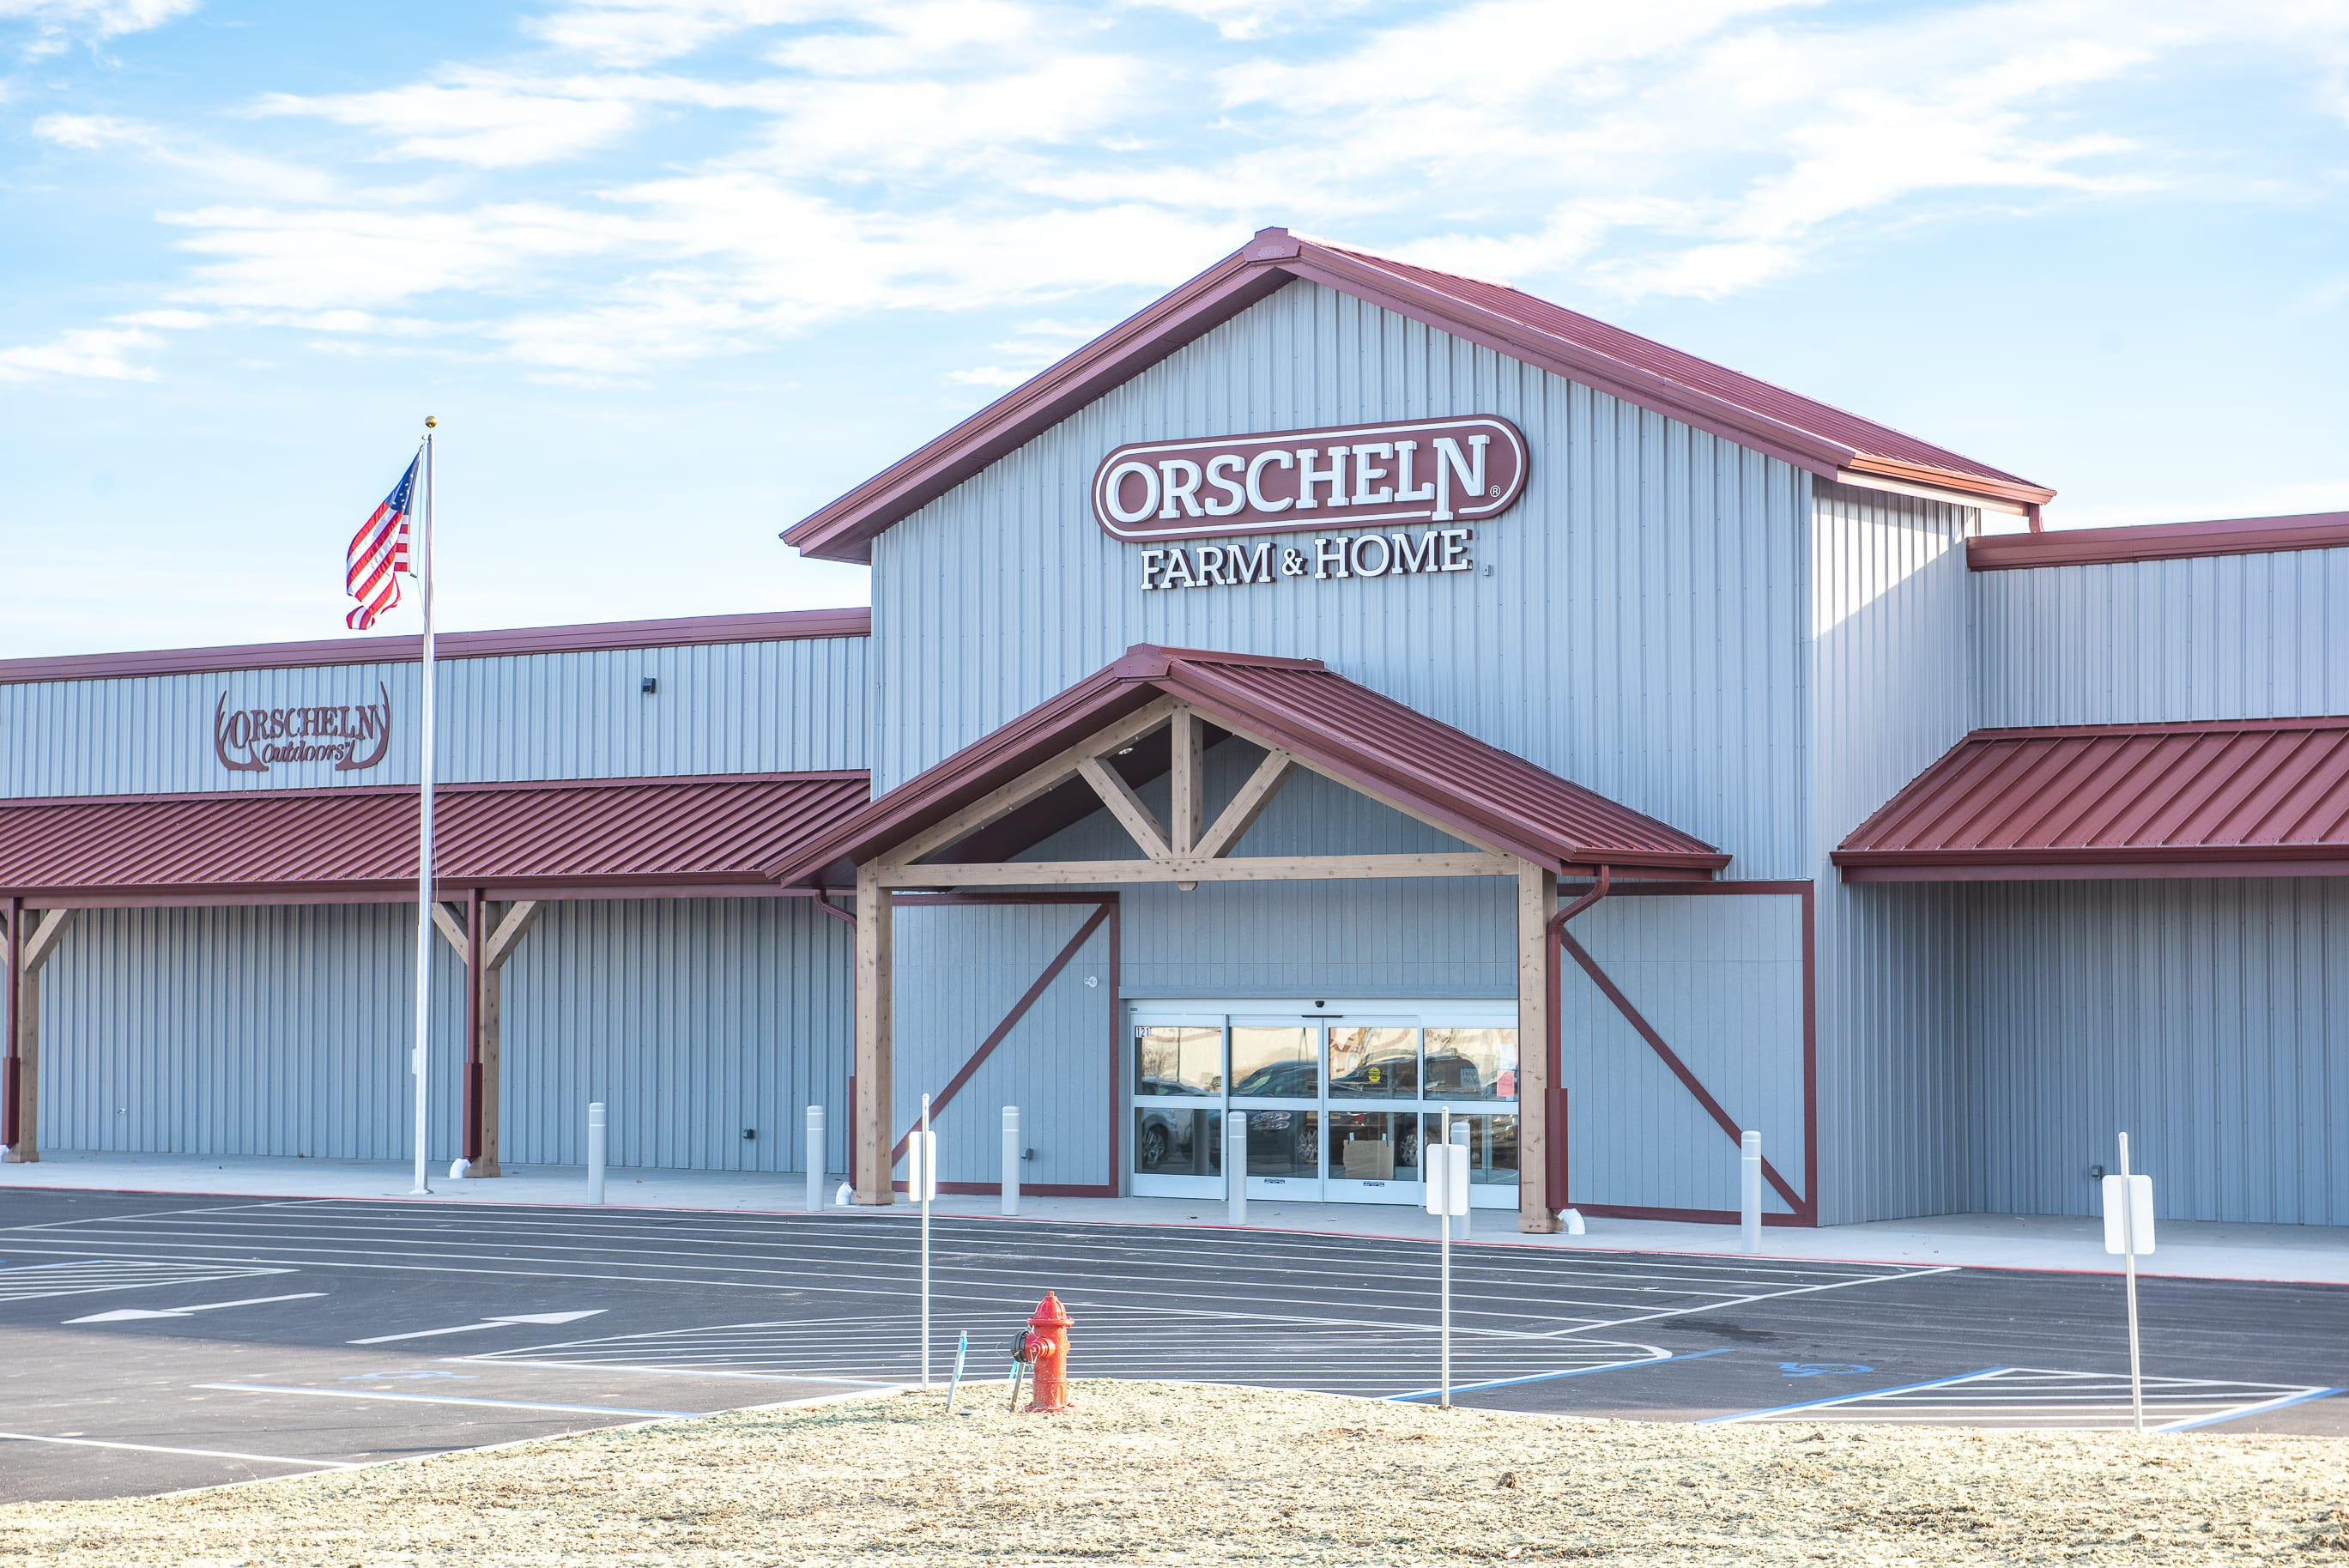 Front view of Orscheln Farm & Home Store in Junction City, Kansas 66441